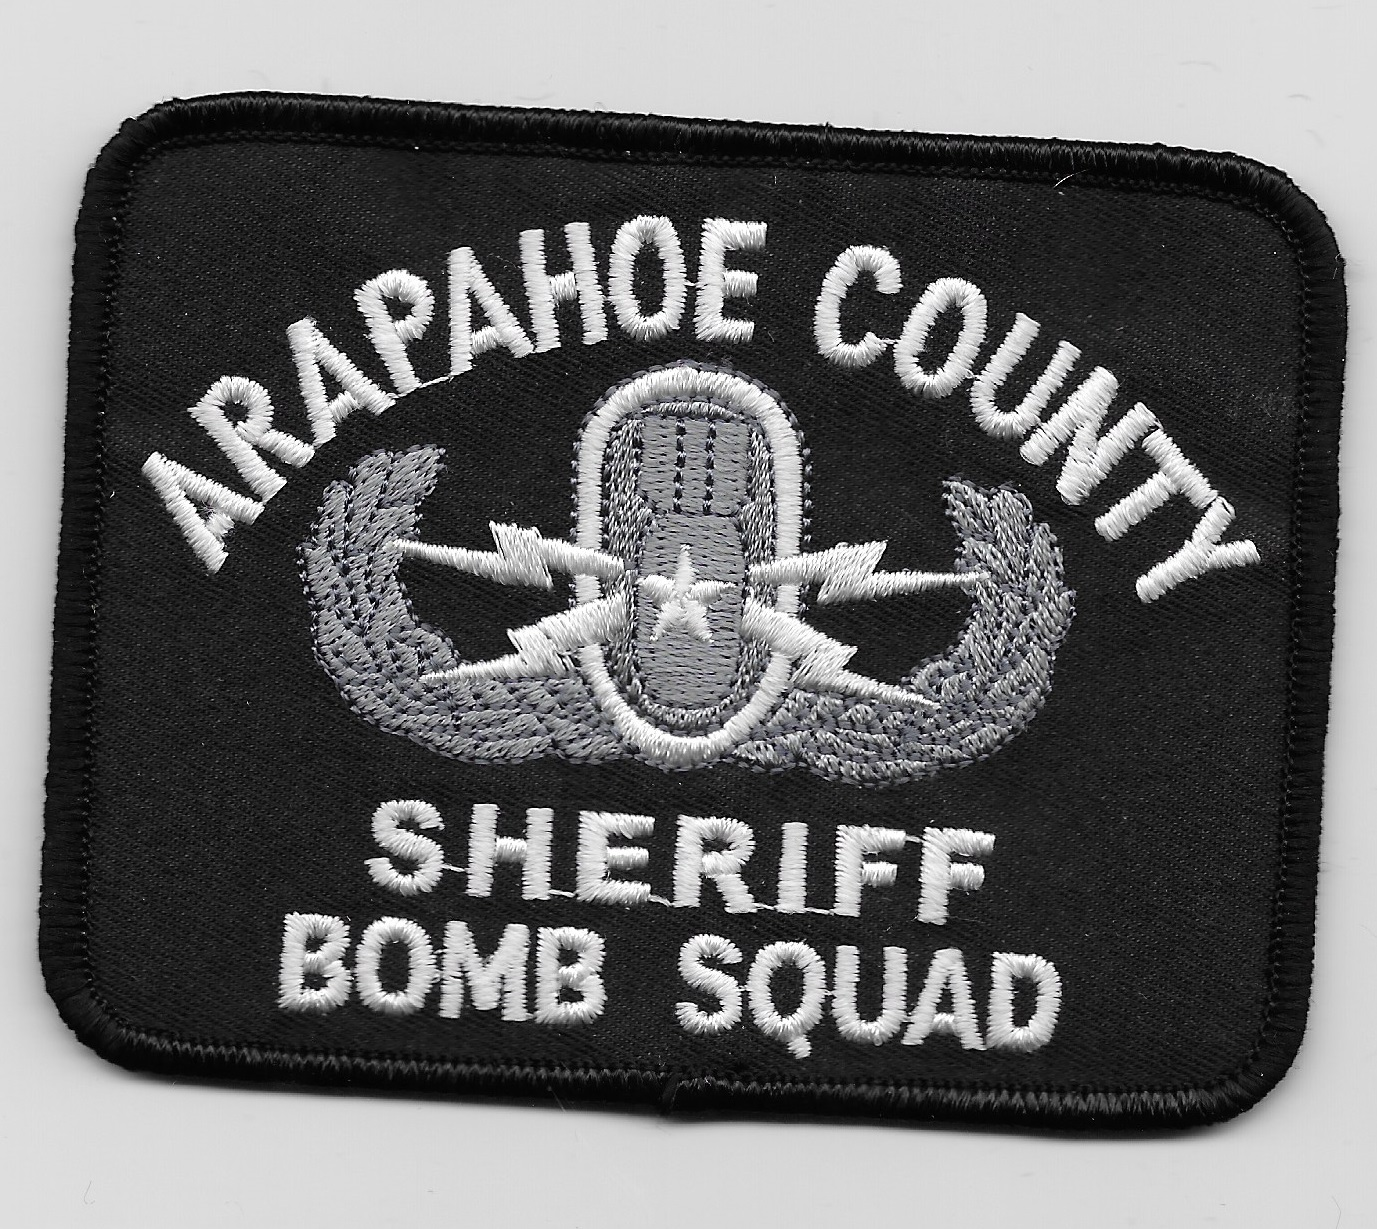 Arapahoe County EOD Bomb Squad CO